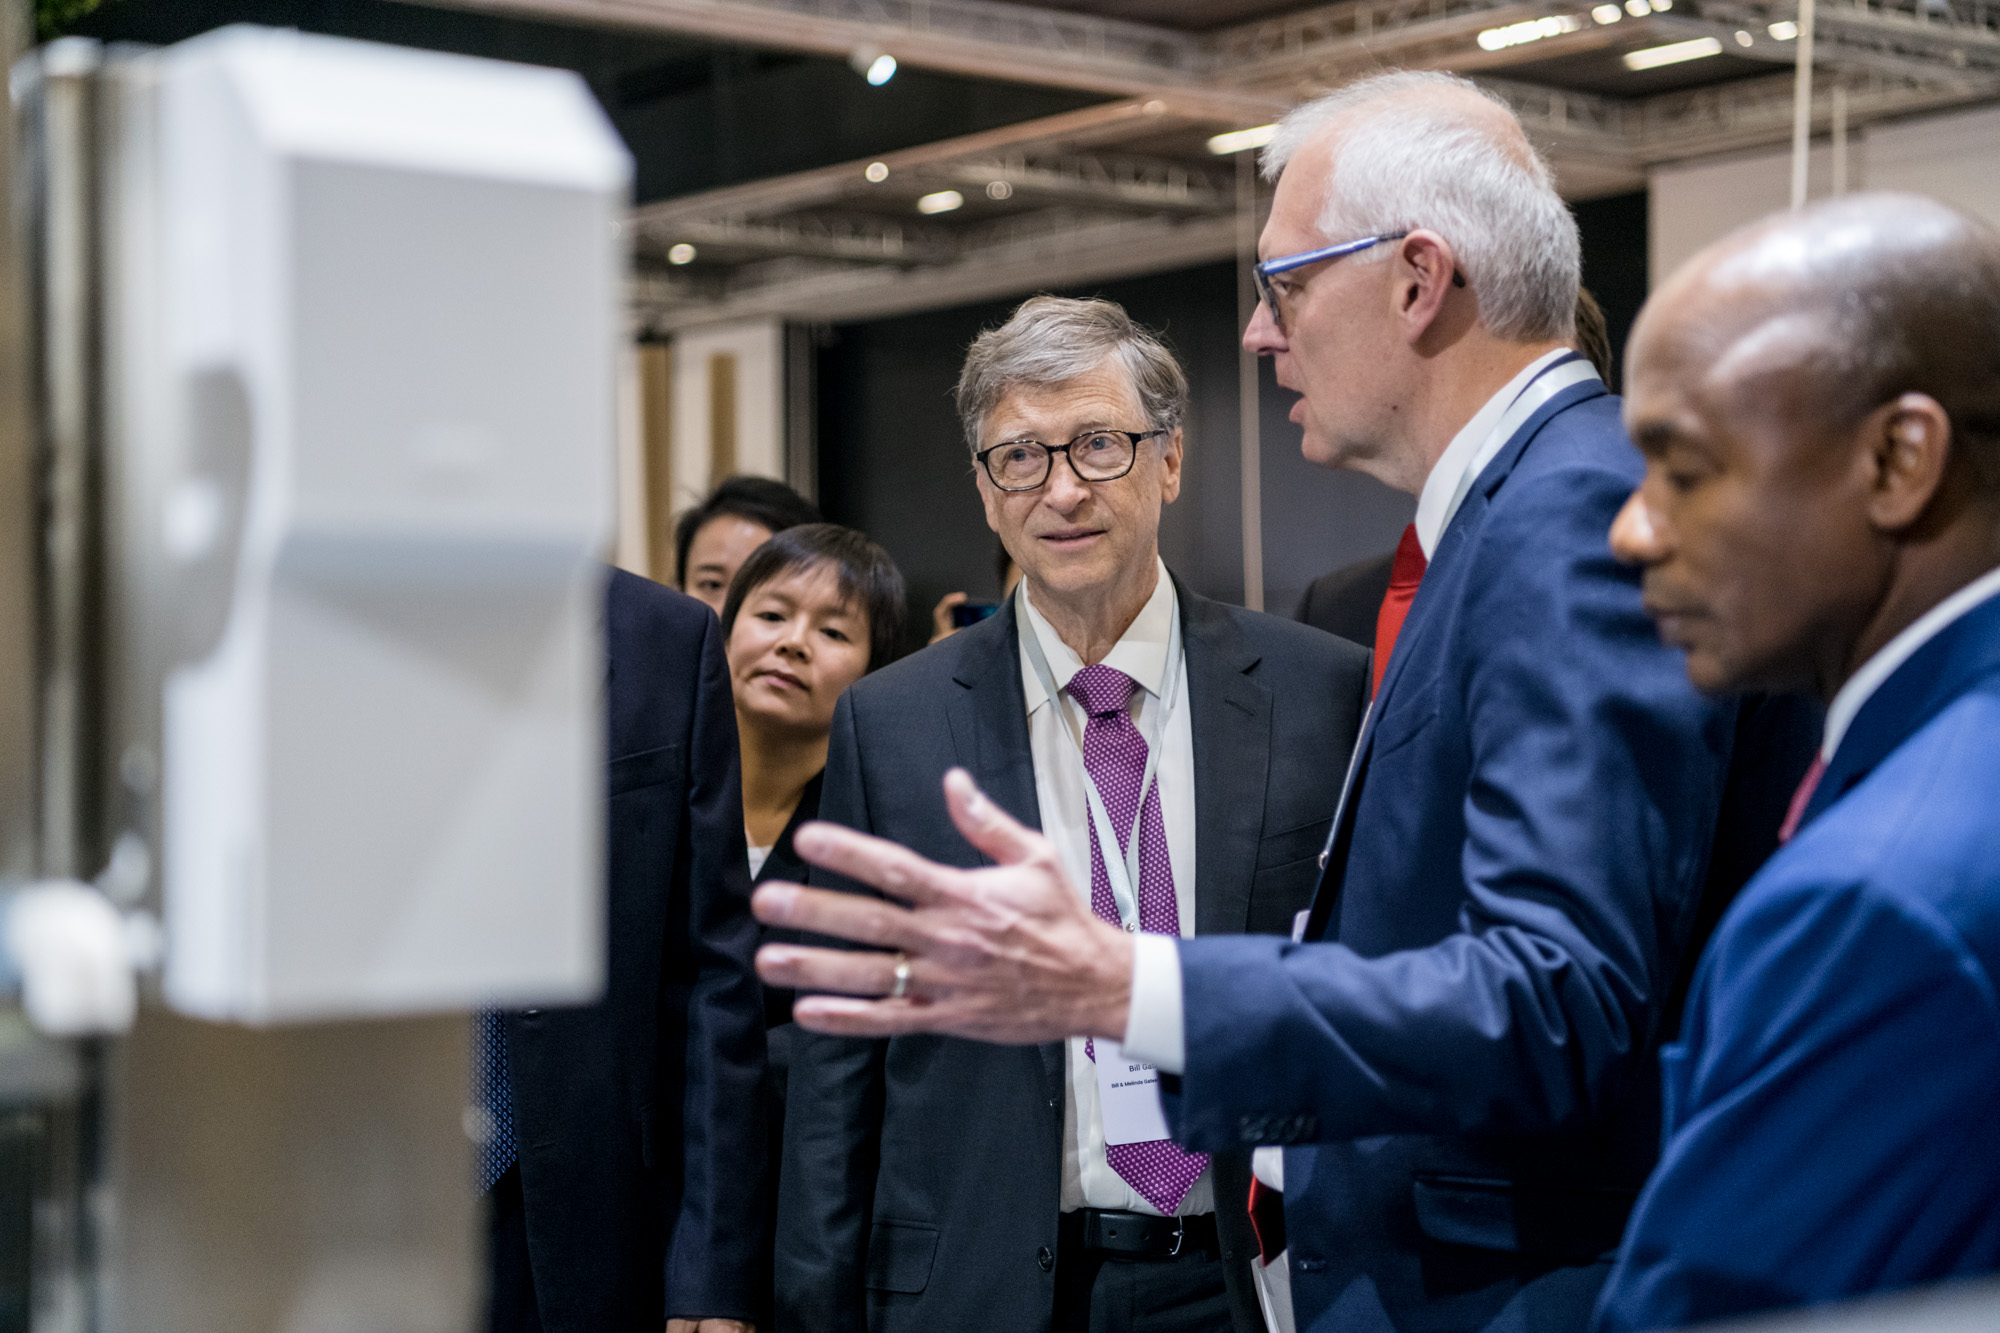 Bill Gates, founder of Microsoft and co-chair of the Bill & Melinda Gates Foundation visits the Reinvented Toilet Expo in Beijing, Nov. 6, 2018. [Photo courtesy of the Bill & Melinda Gates Foundation]